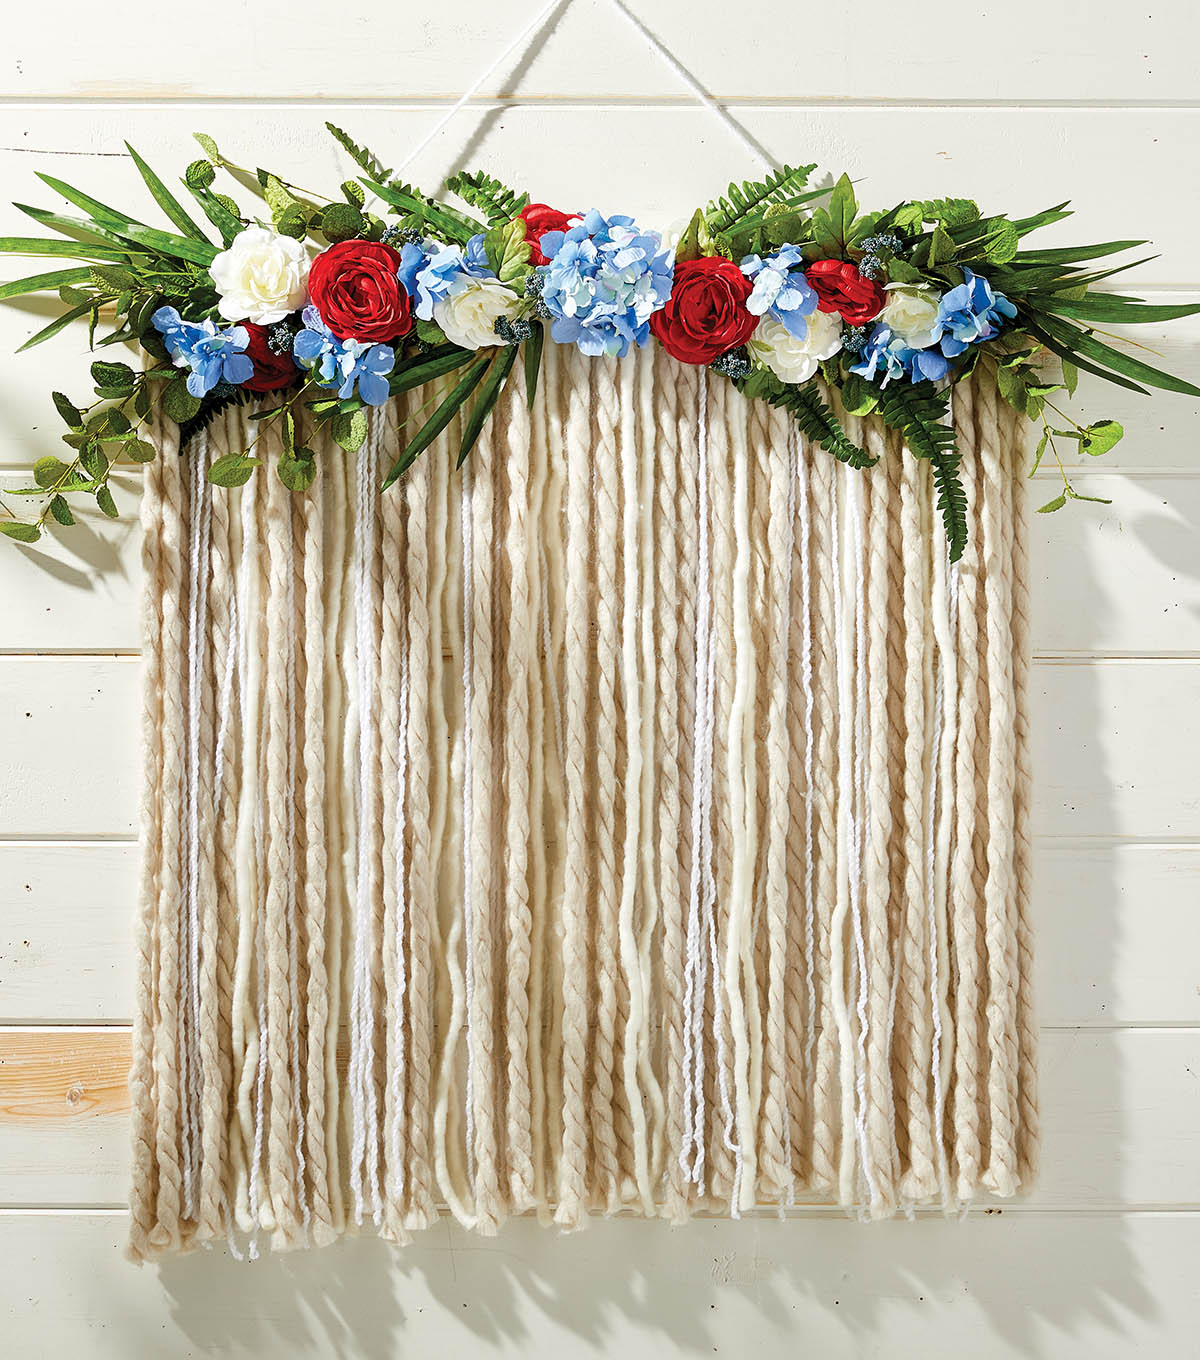 How to Make A Floral Garland Backdrop | JOANN